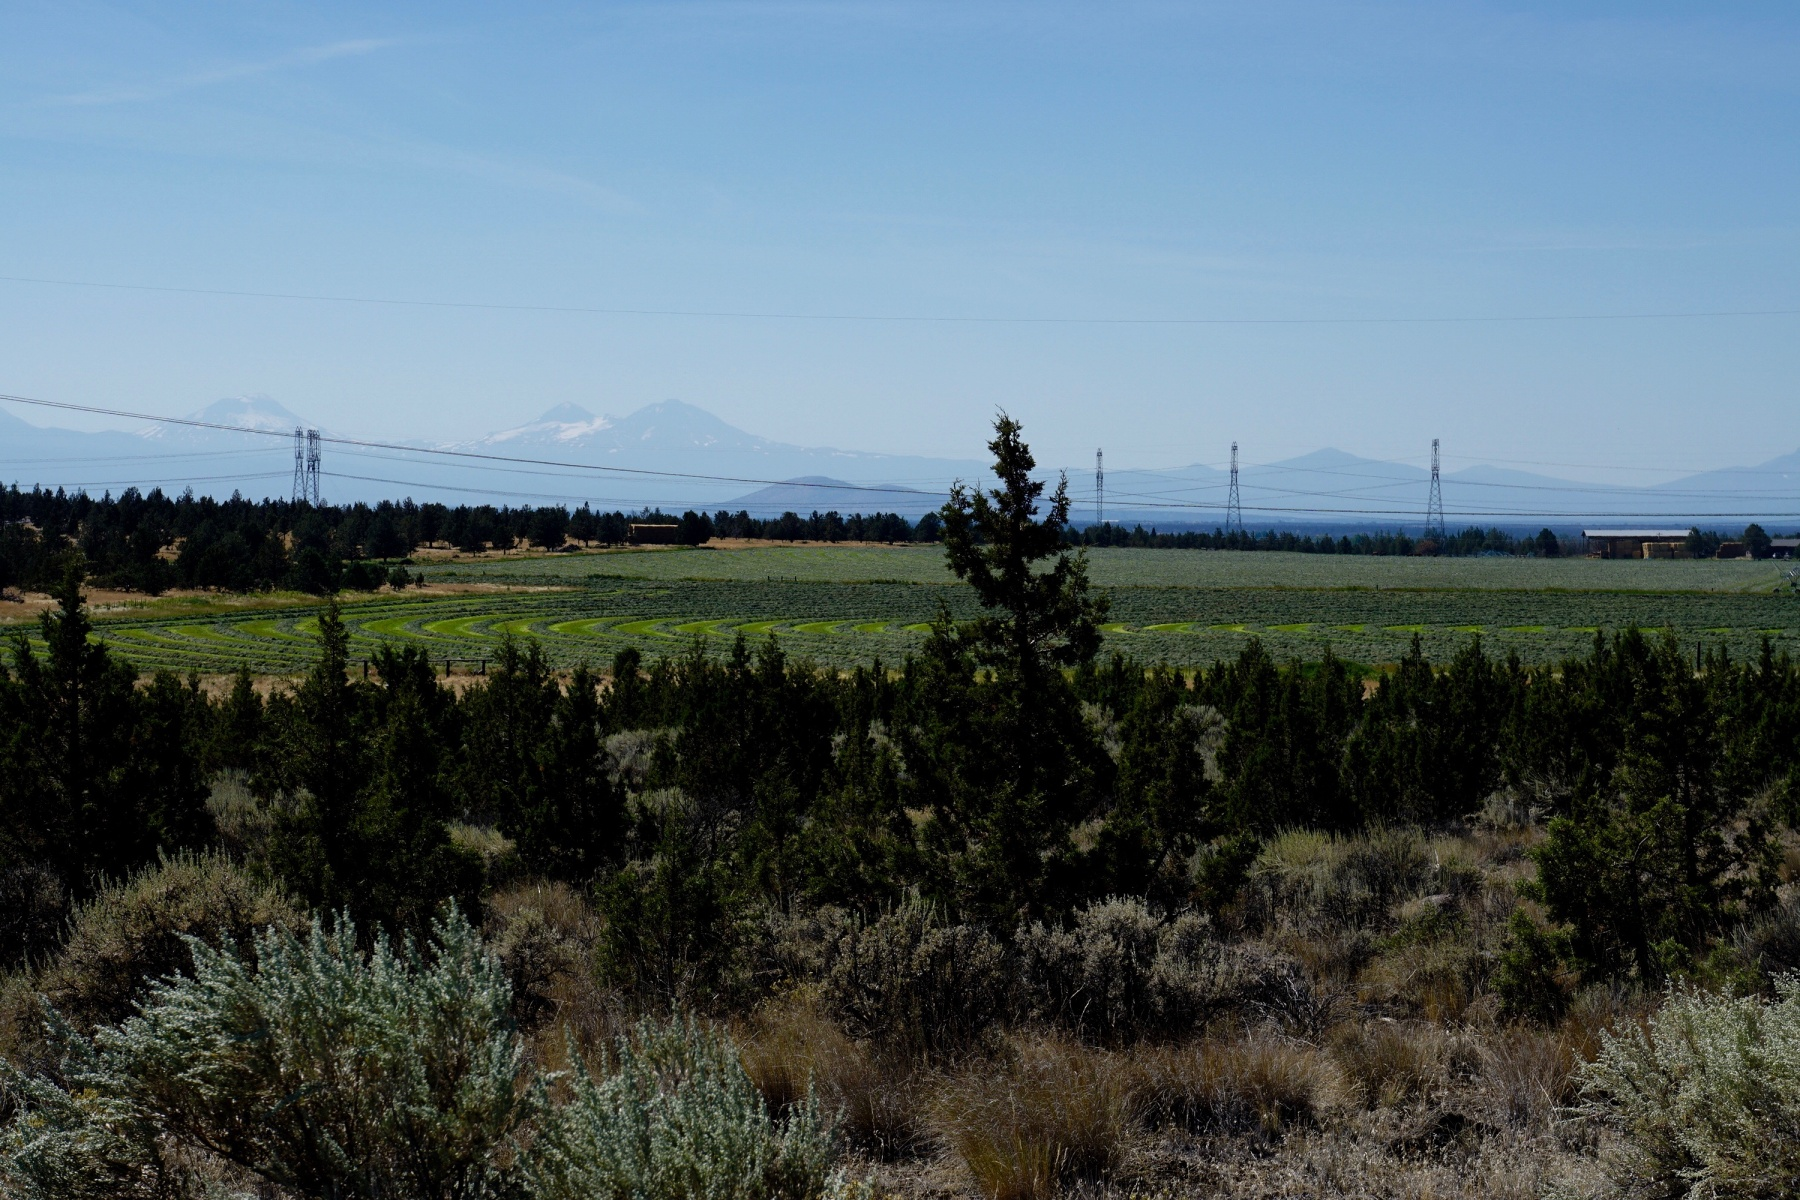 Đất đai vì Bán tại Just Listed in Your Area SW Houston Lake Rd Powell Butte, Oregon, 97753 Hoa Kỳ